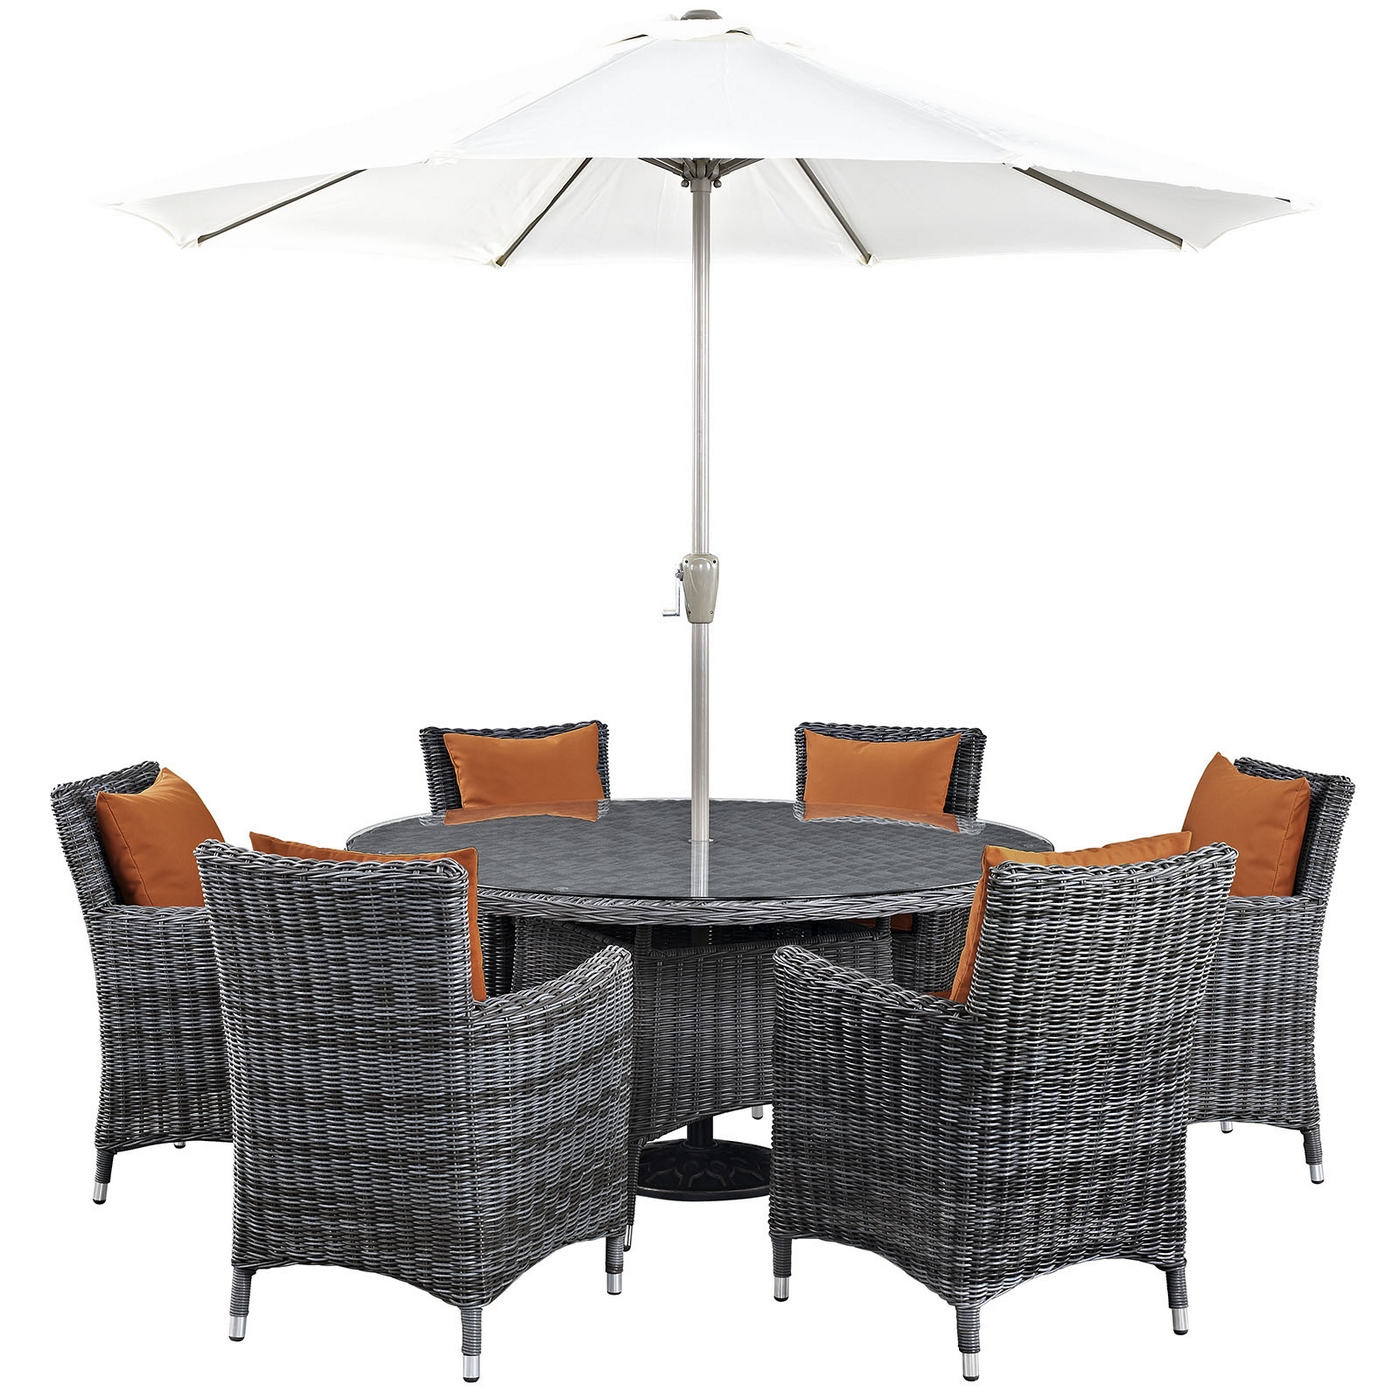 Details About New Summon Casual 8 Piece Outdoor Patio Sunbrella Round Dining Table Set Canvas